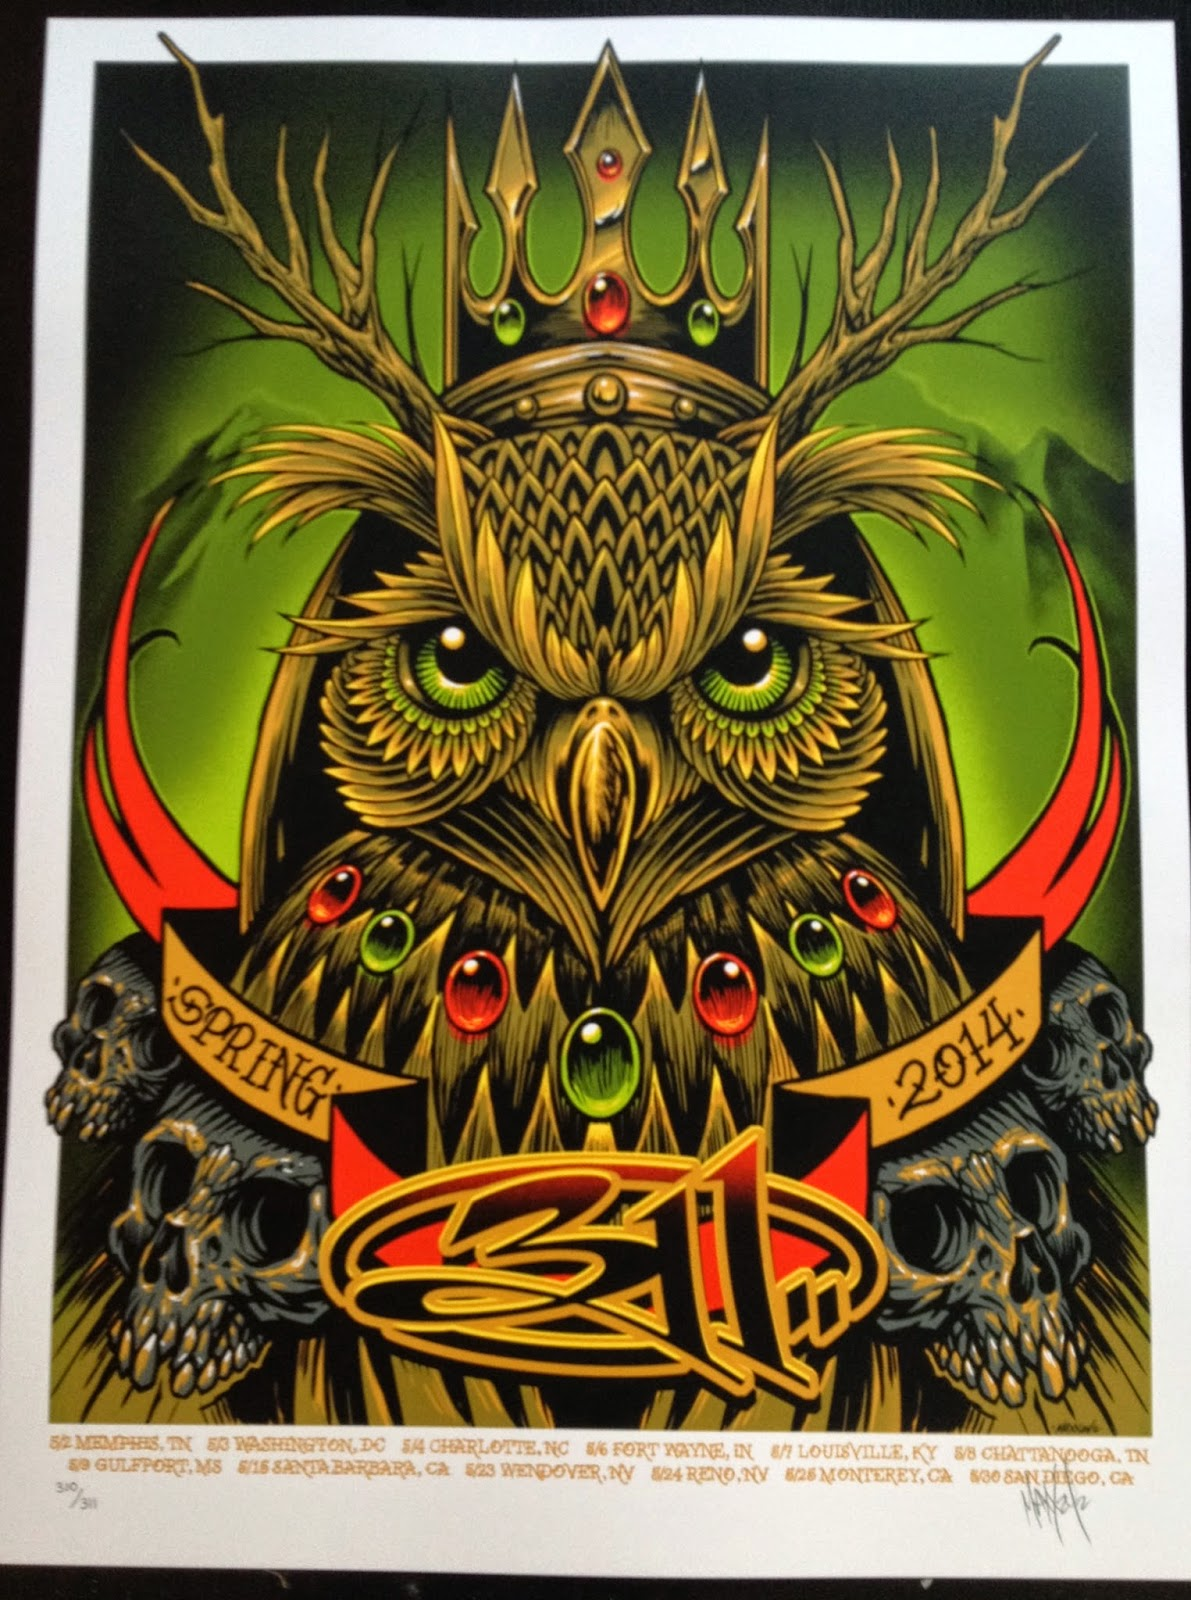 INSIDE THE ROCK POSTER FRAME BLOG: 311 Spring Tour poster by Maxx242